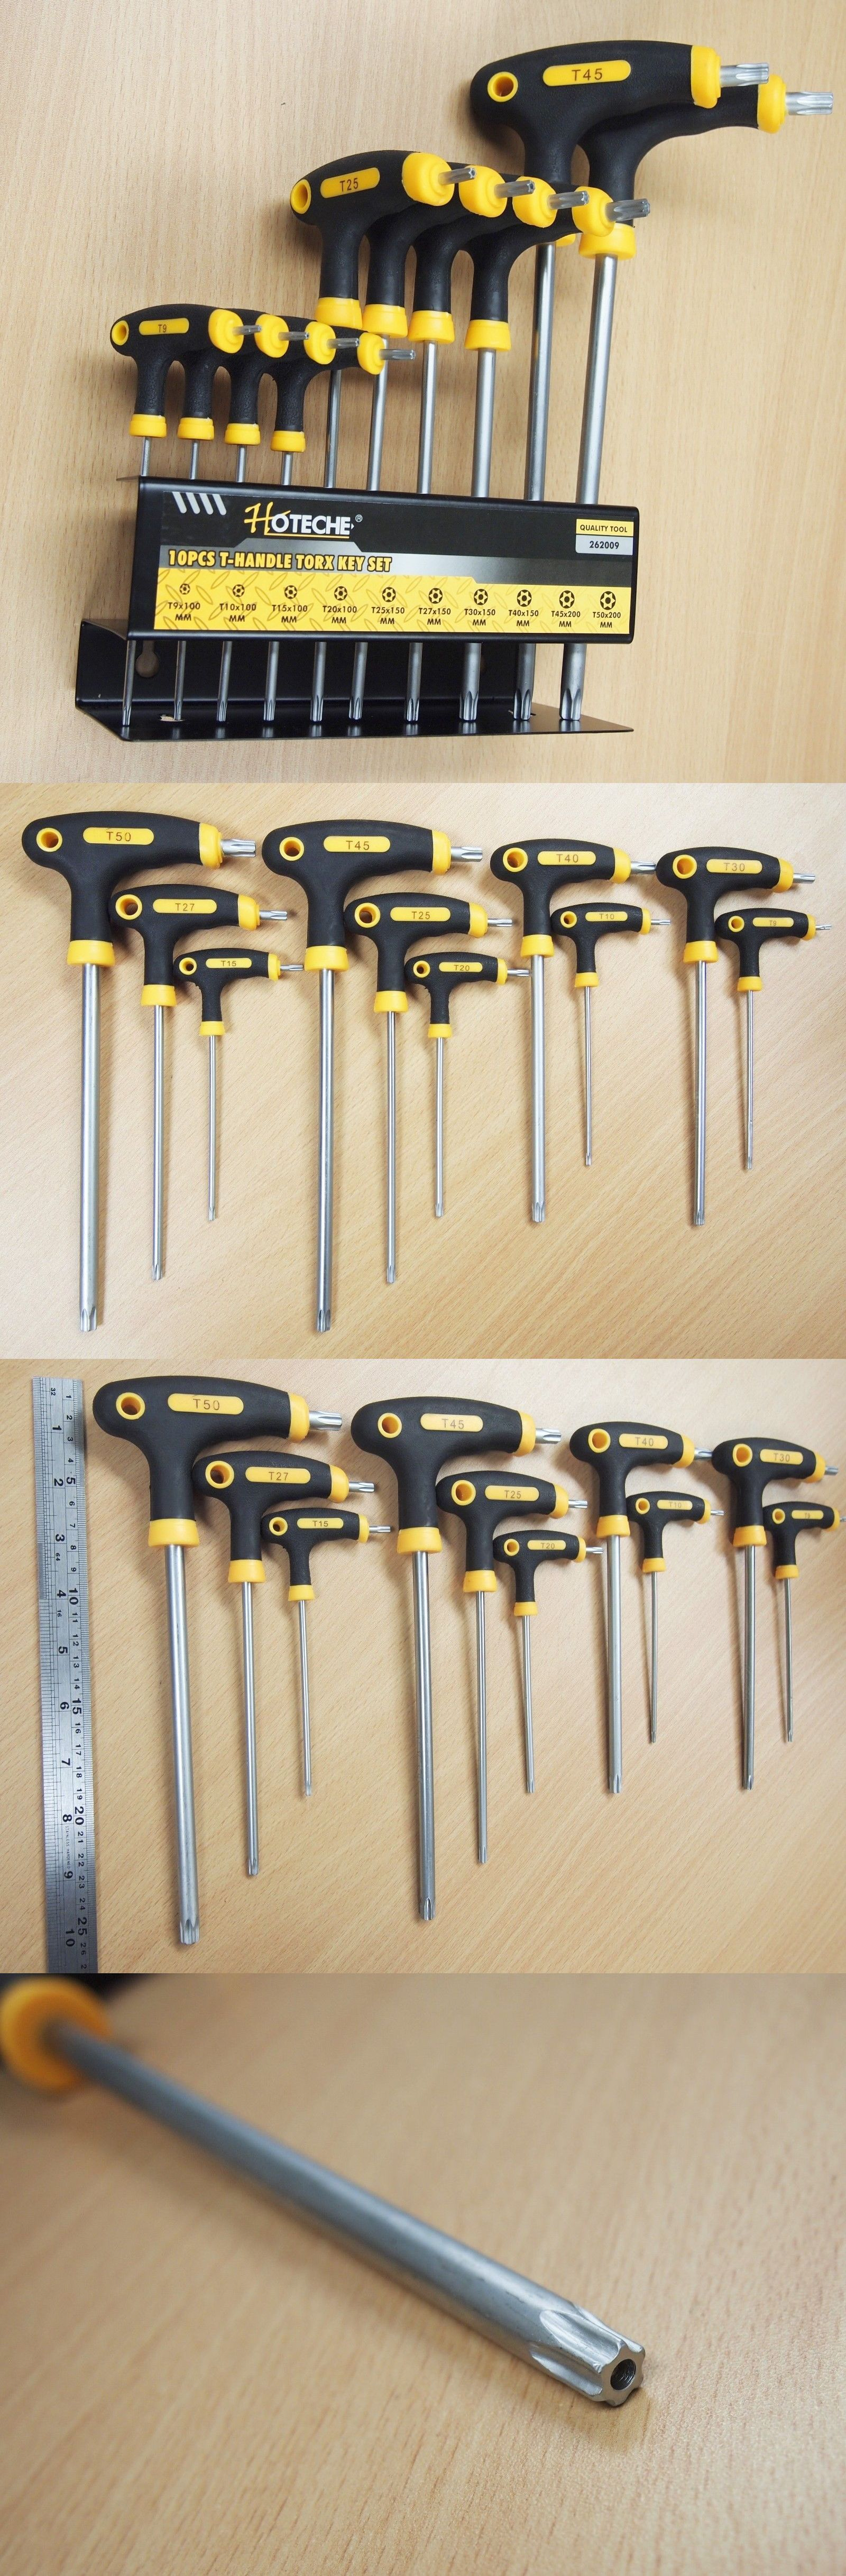 10pc T Handle Torx Star Key Wrench Set 2 Drive Ends Stand Rack Wrench Set Hex Key Wrenches